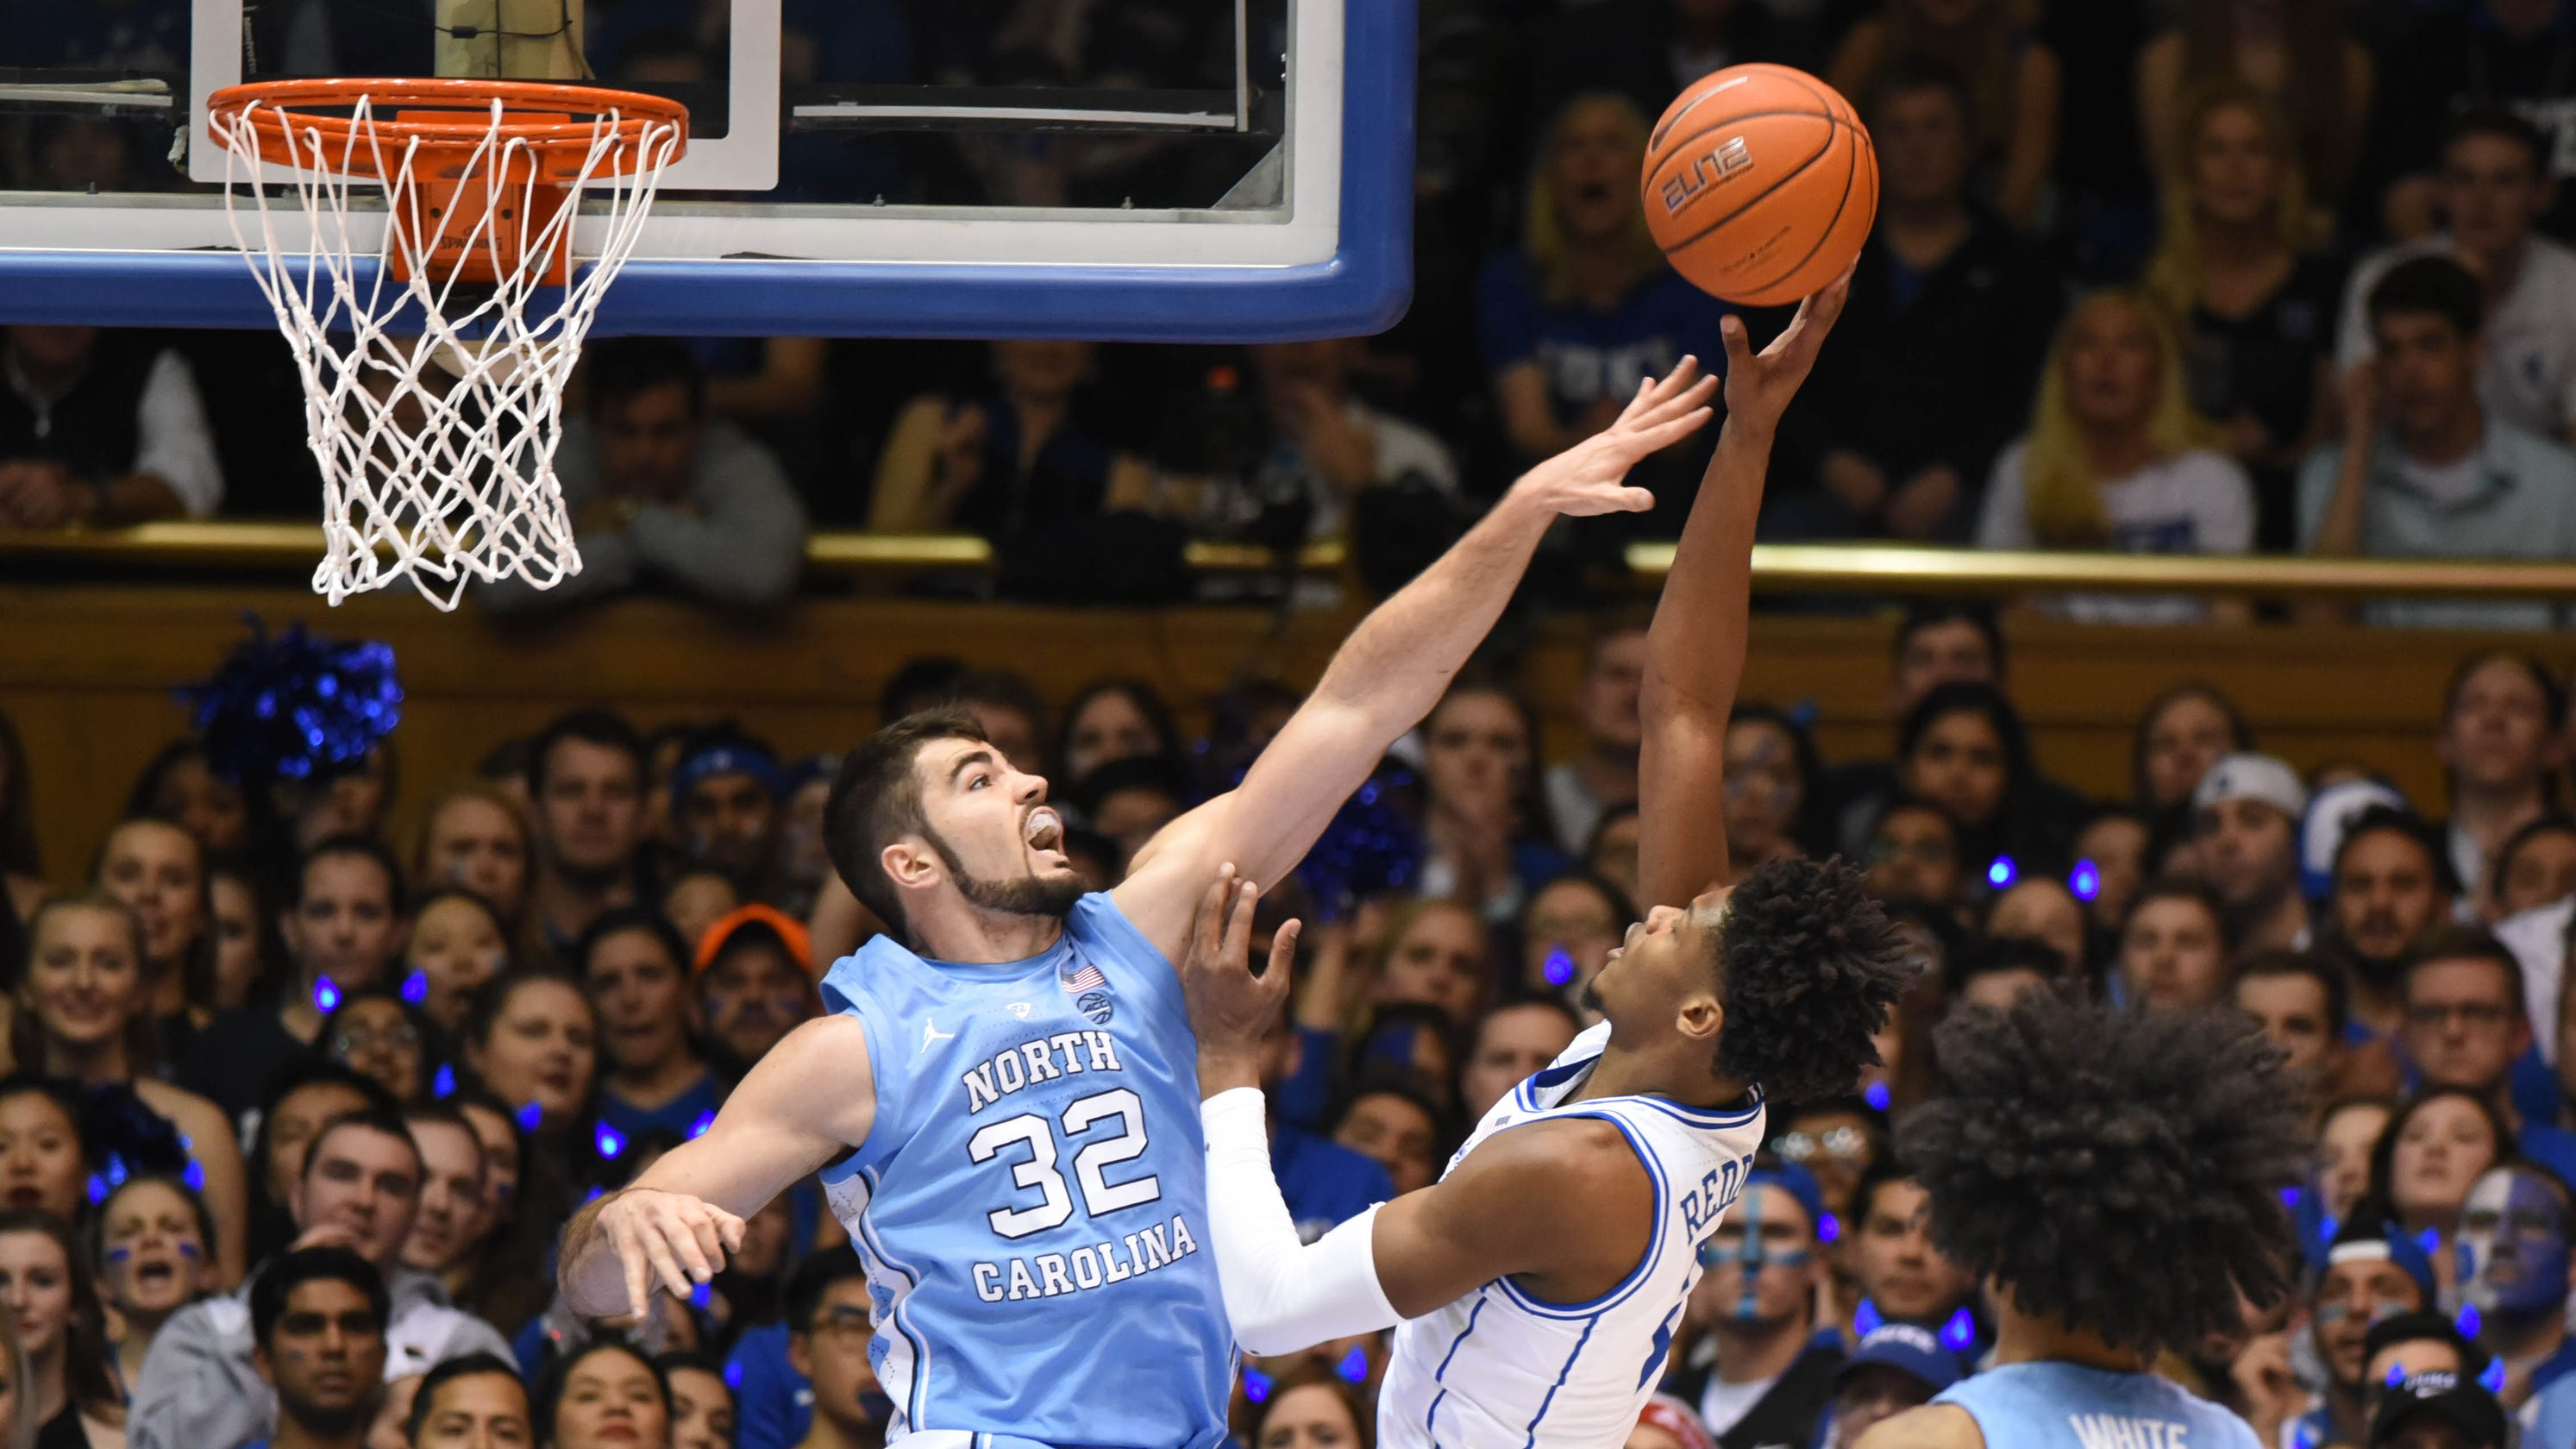 574d8bde9 Duke blown out by North Carolina after Zion Williamson injury